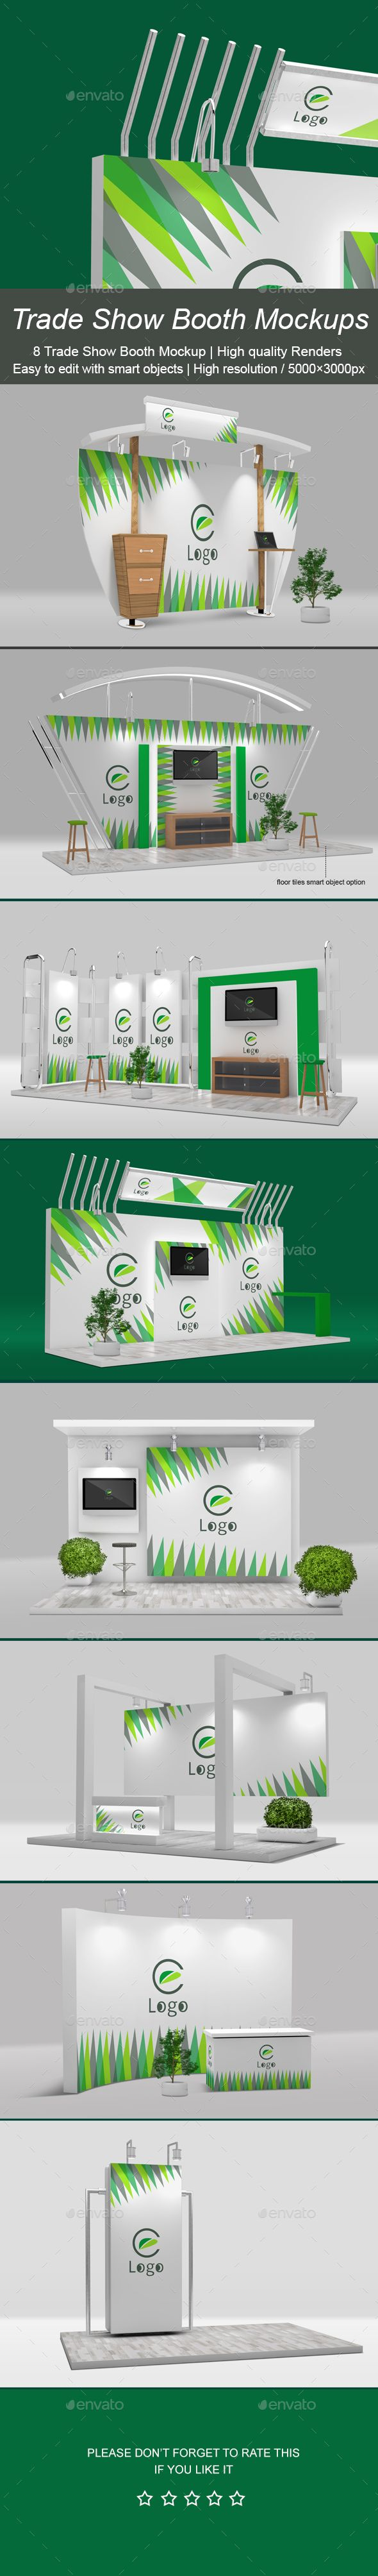 Trade Show Booth Mockup Design Template - Signage Print Template PSD. Download here: https://graphicriver.net/item/trade-show-booth-mockup-/16961599?s_rank=266&ref=yinkira